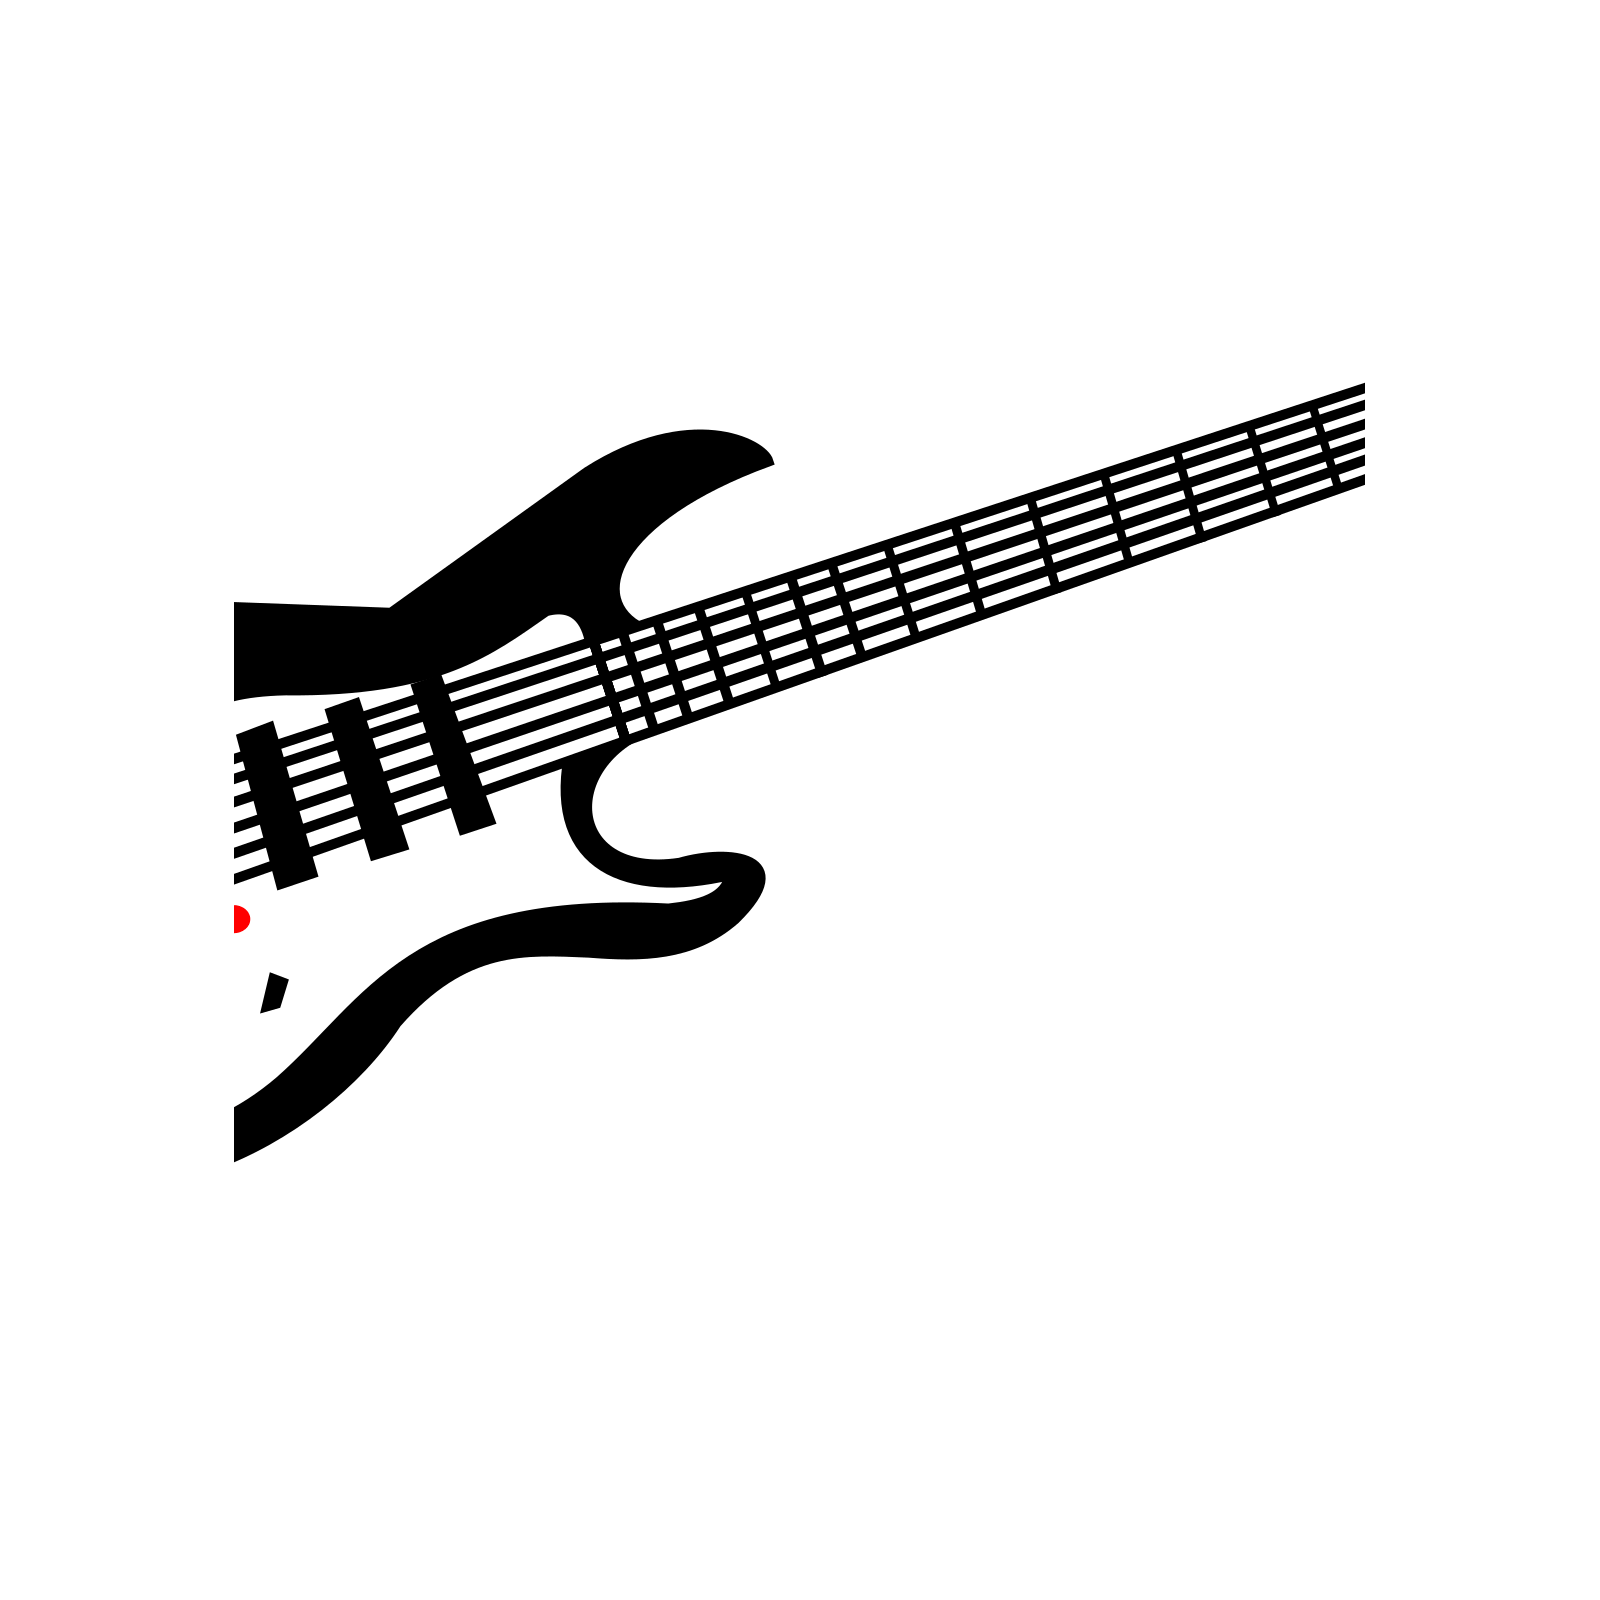 Electric Guitar Svg Vector Electric Guitar Clip Art